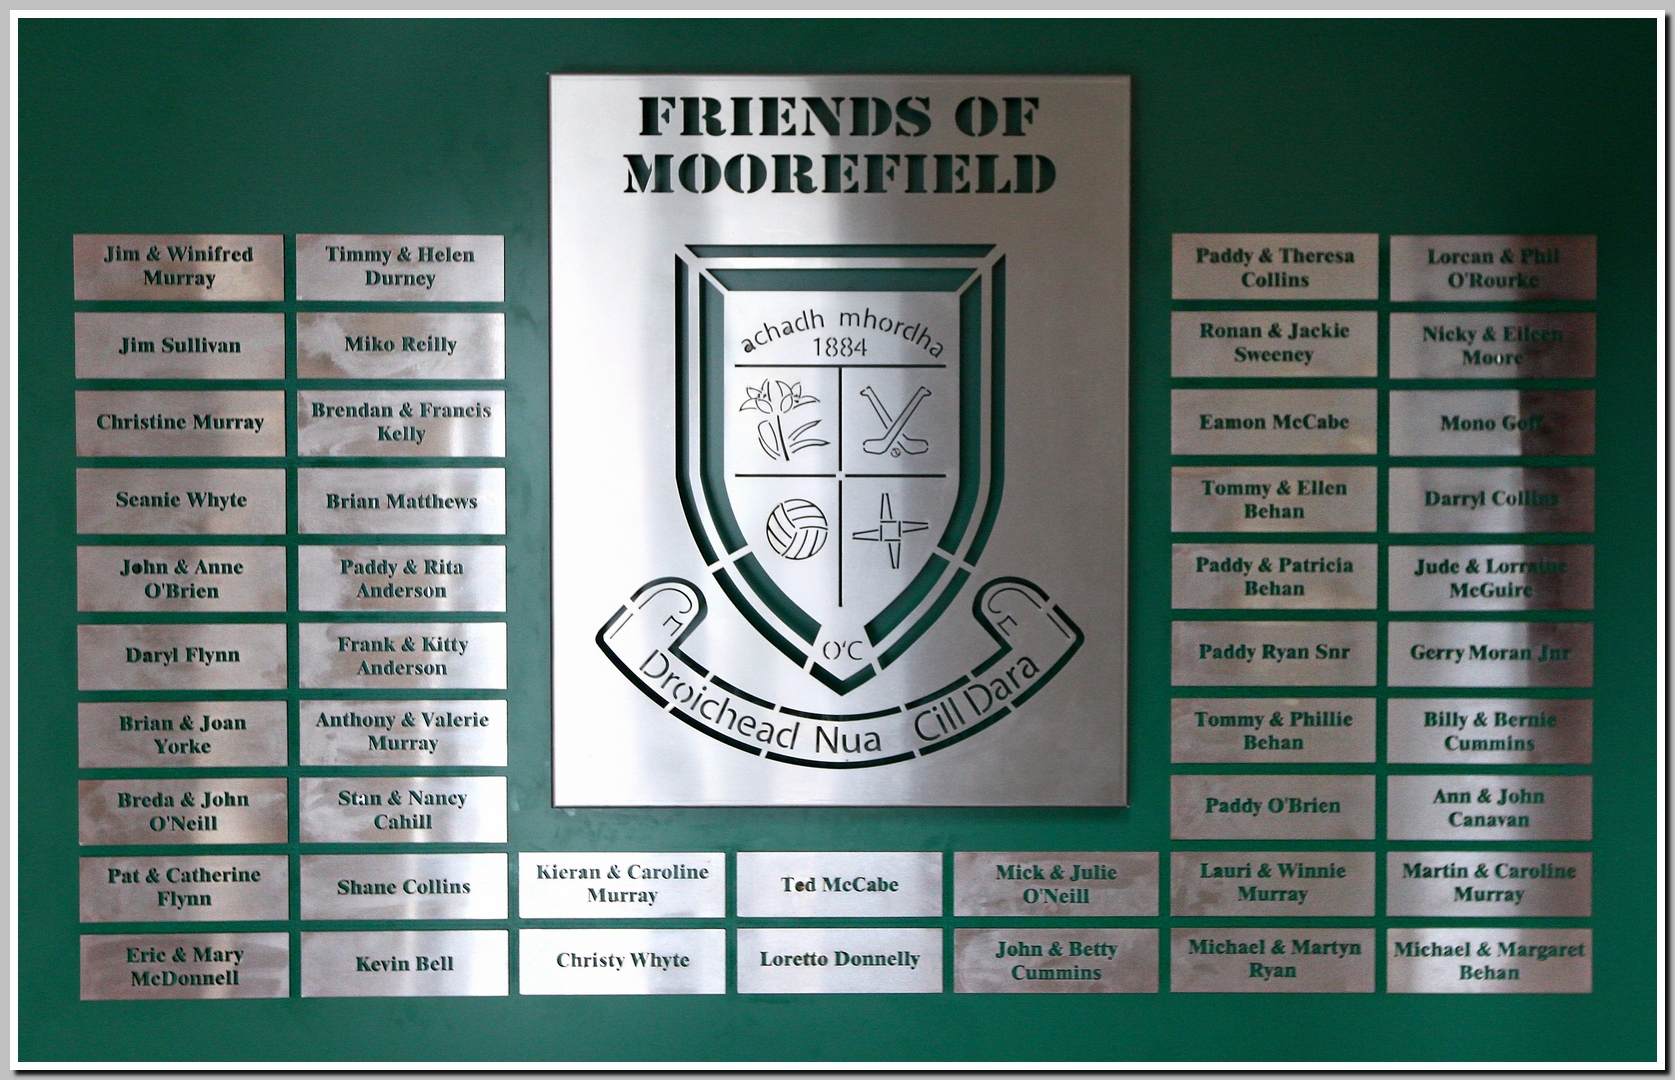 Friends of Moorefield